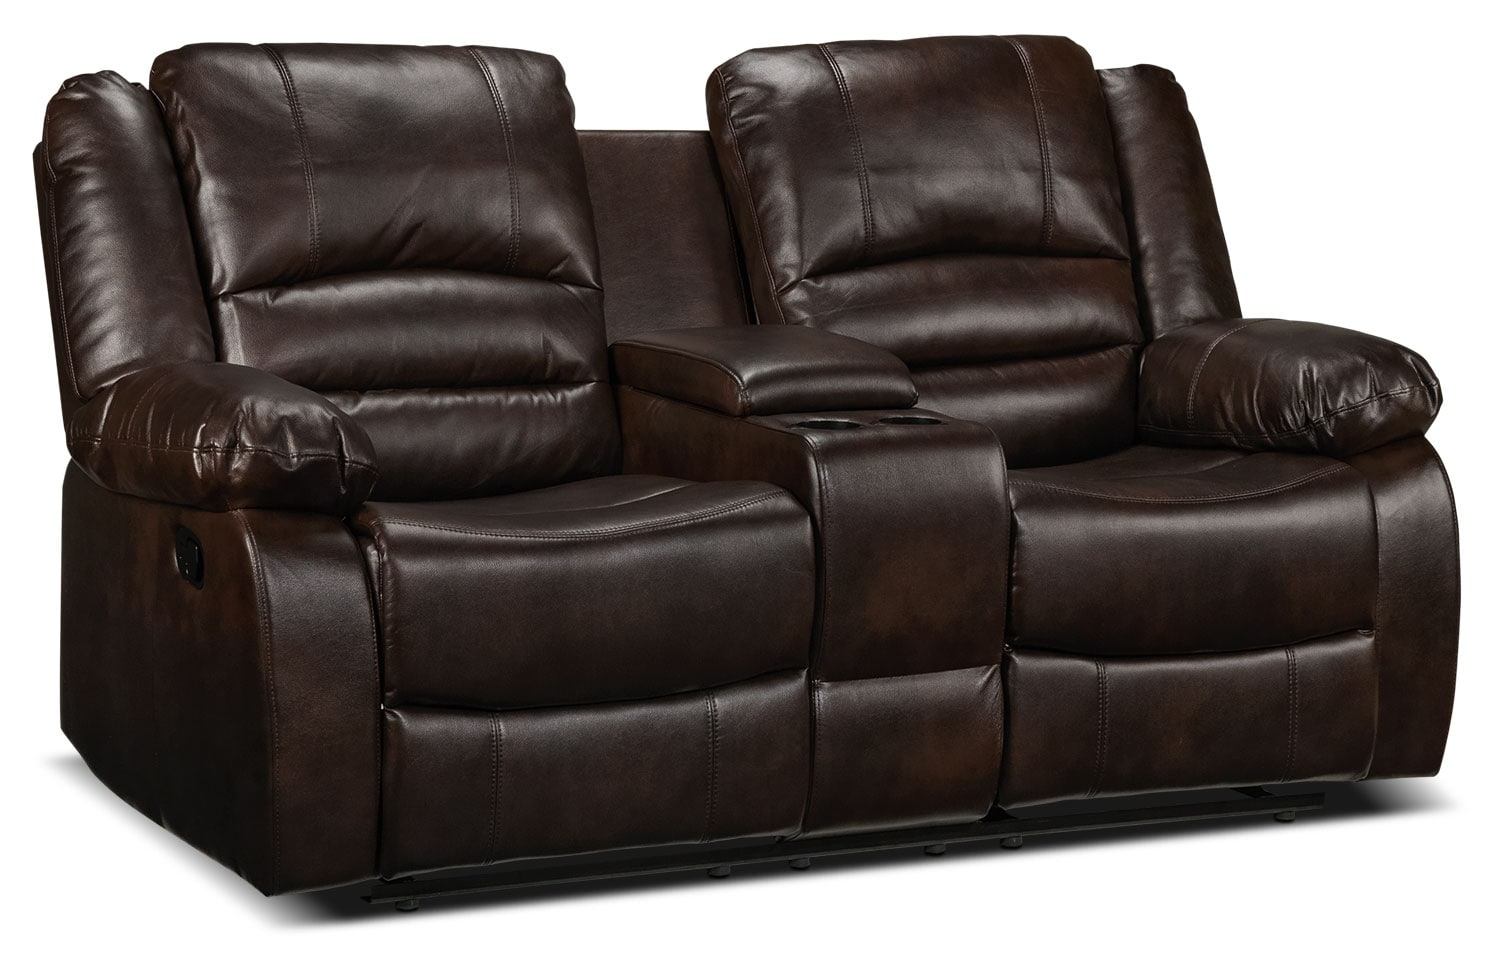 Living Room Furniture - Brooksdale Reclining Loveseat w/ Console - Deep Brown